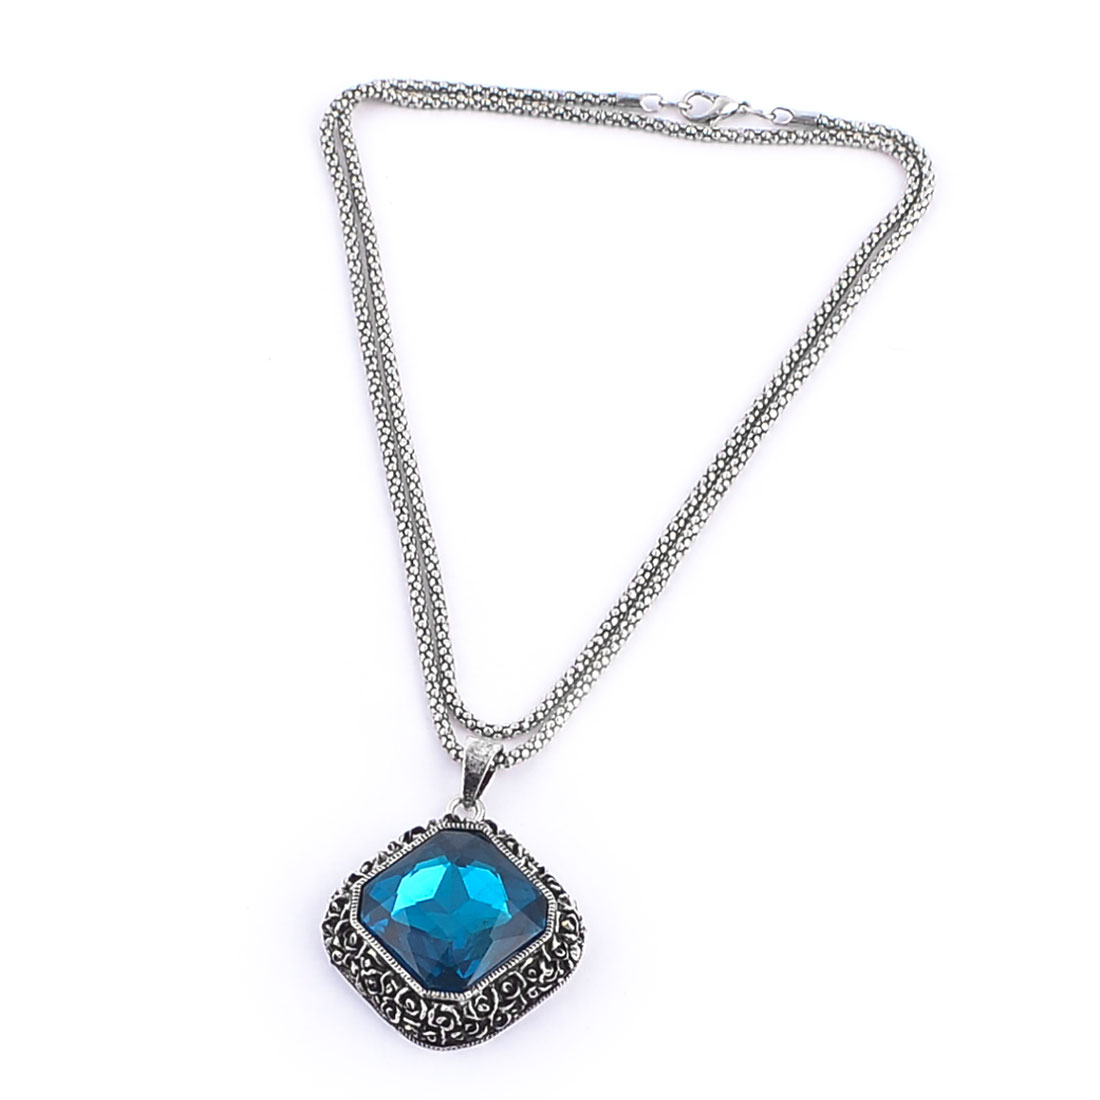 Lobster Clasp Teal Blue Rhombus Design Faux Crystal Decor Sweater Necklace